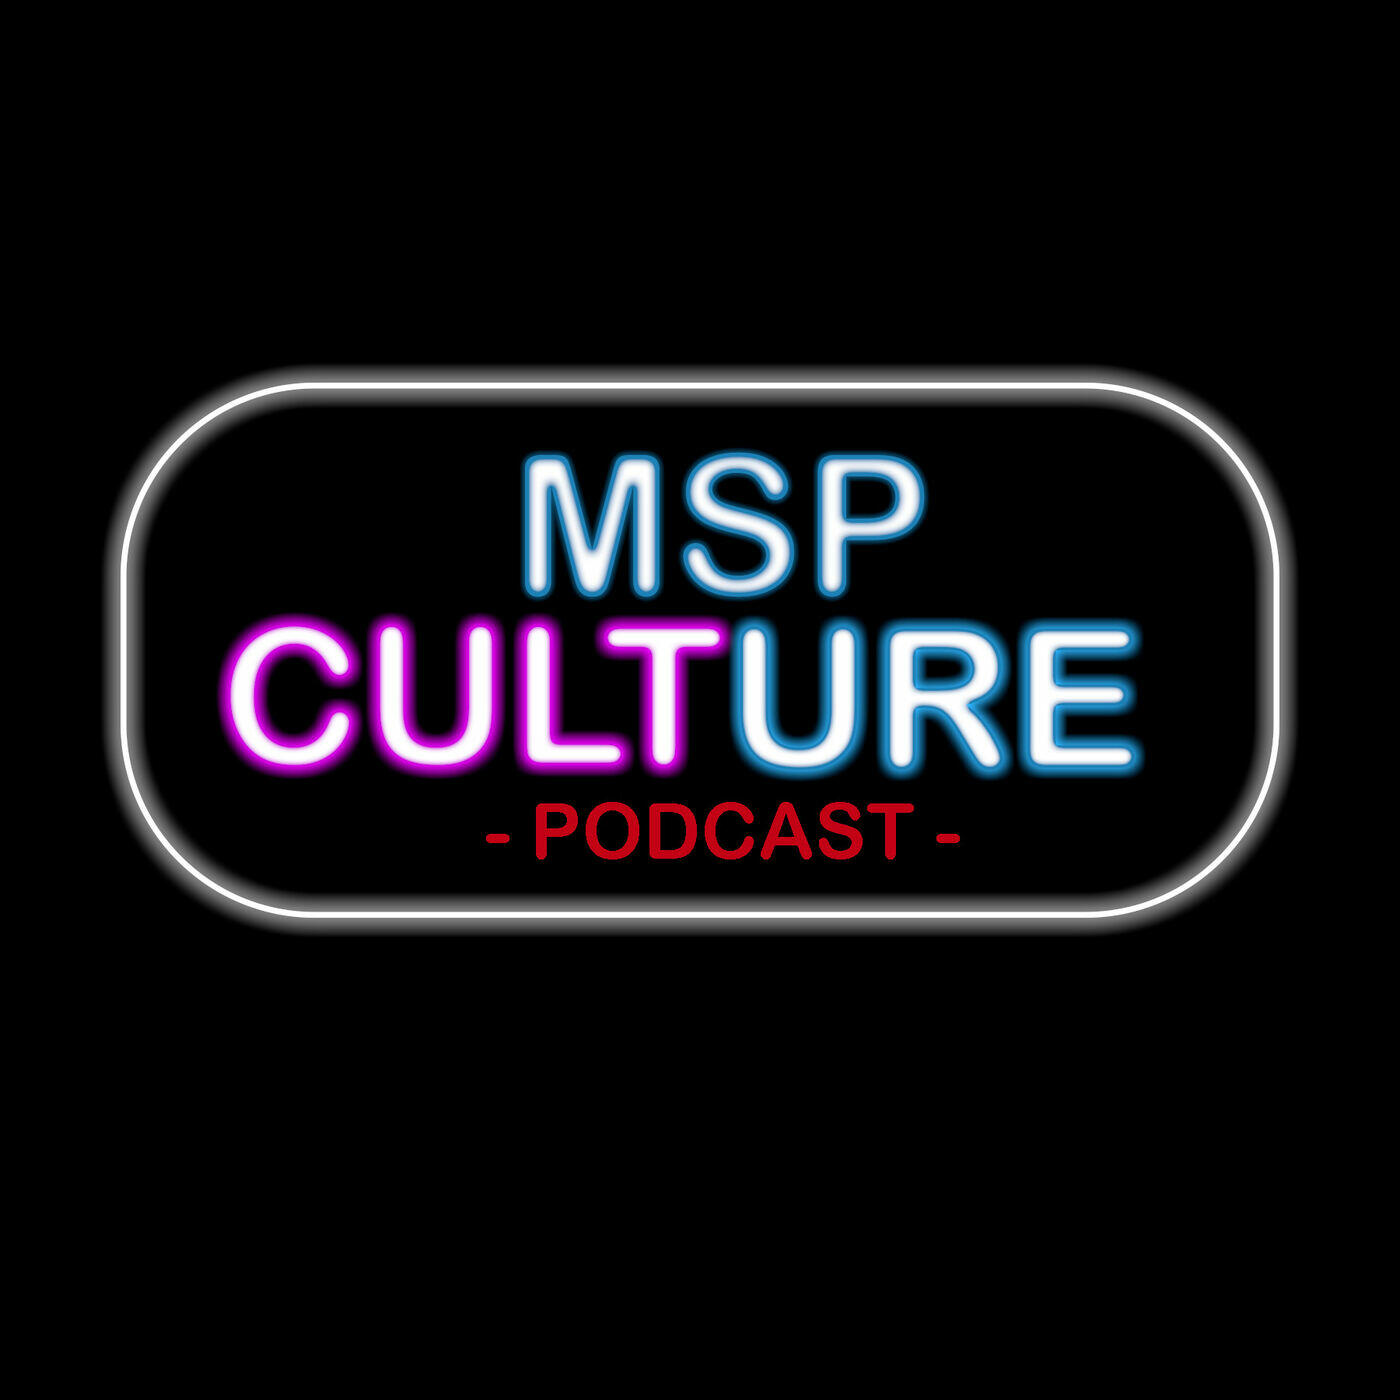 The MSP Culture Podcast